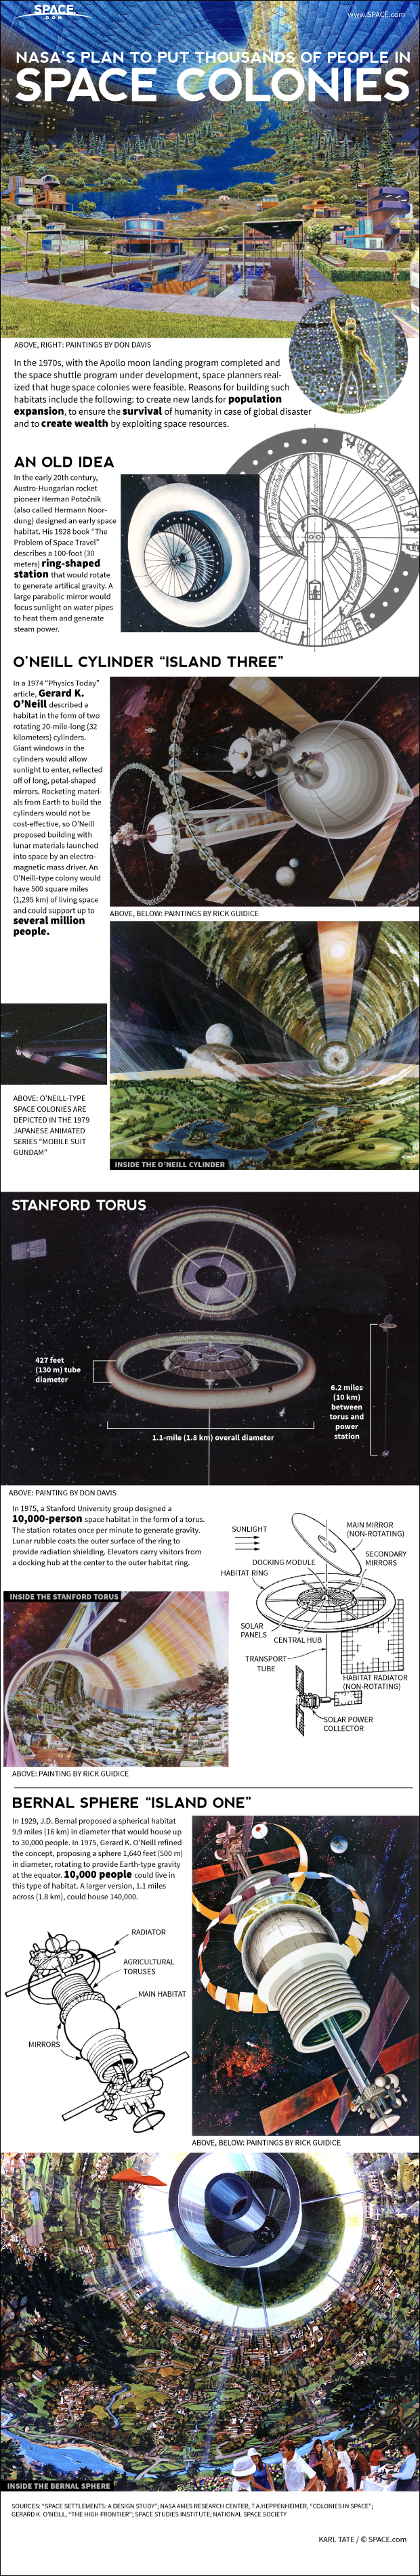 Infographic: NASA's 1970s plans for building giant space colonies.